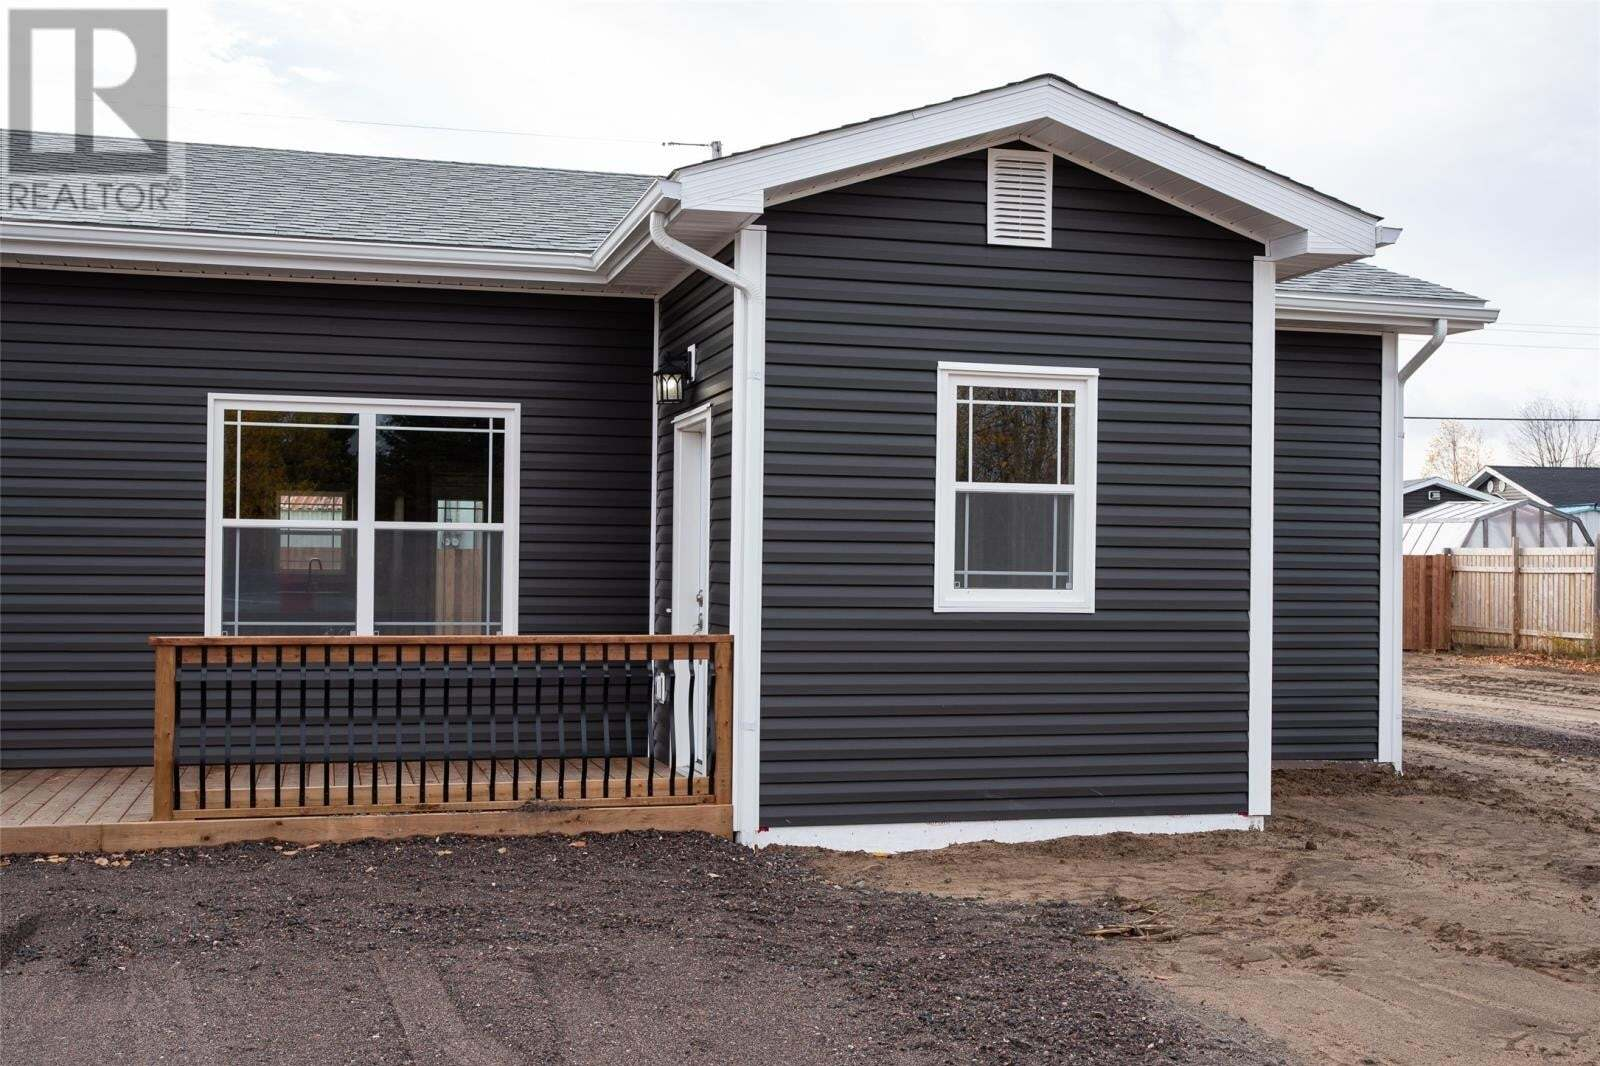 House for sale at 18 Bay Cres Happy Valley-goose Bay Newfoundland - MLS: 1222523